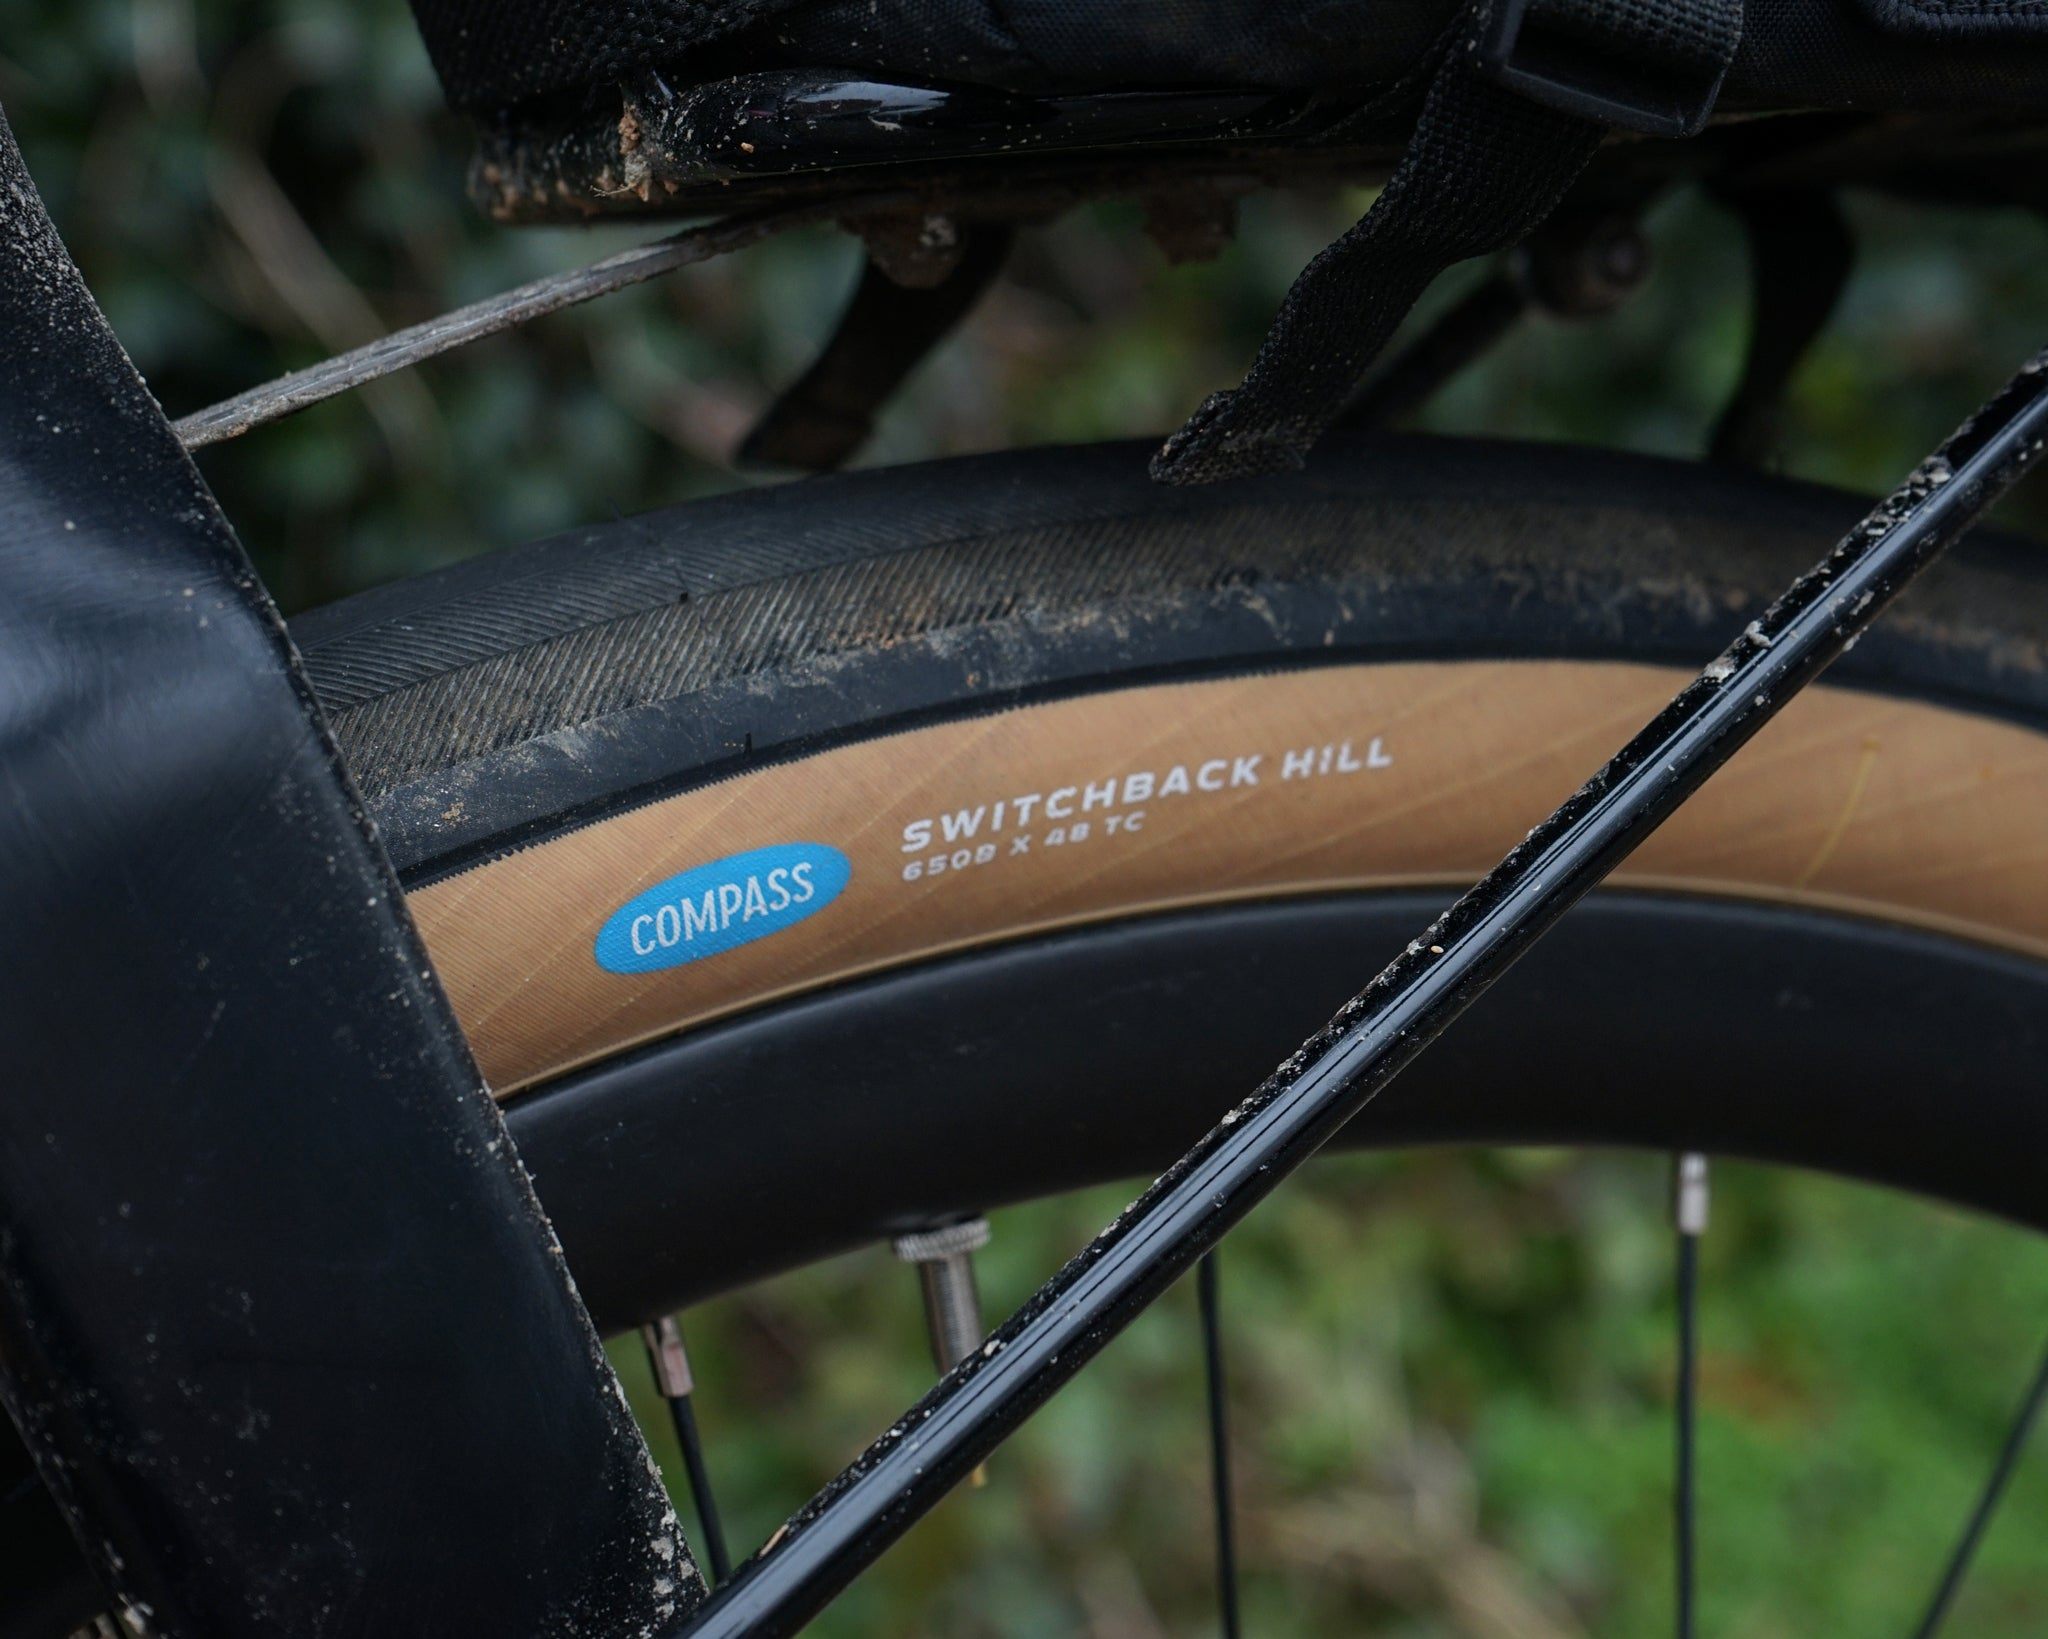 Compass Switchback Hill tire review